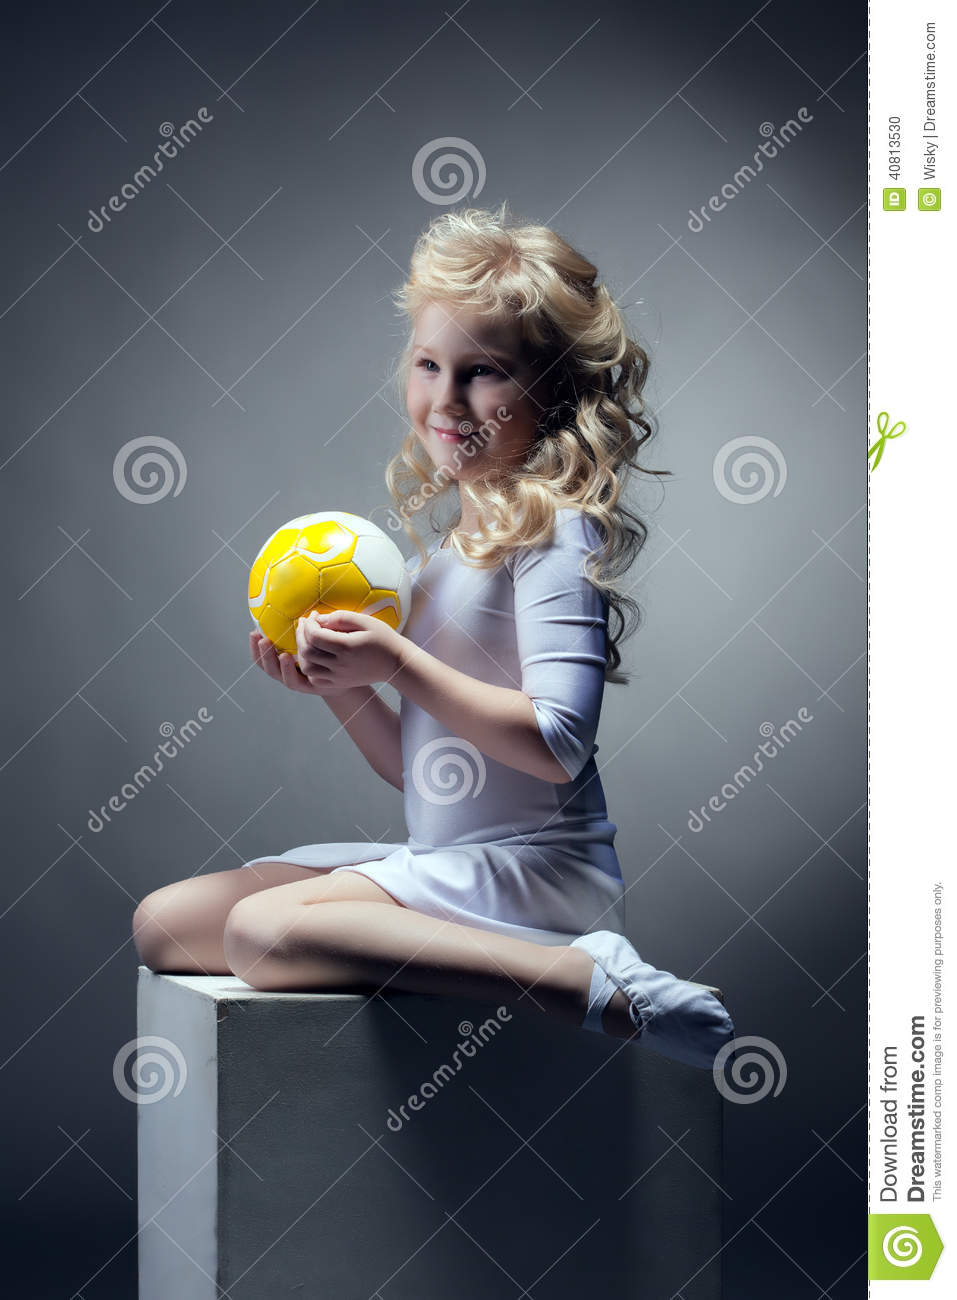 Cute blonde gymnast posing with ball on cube